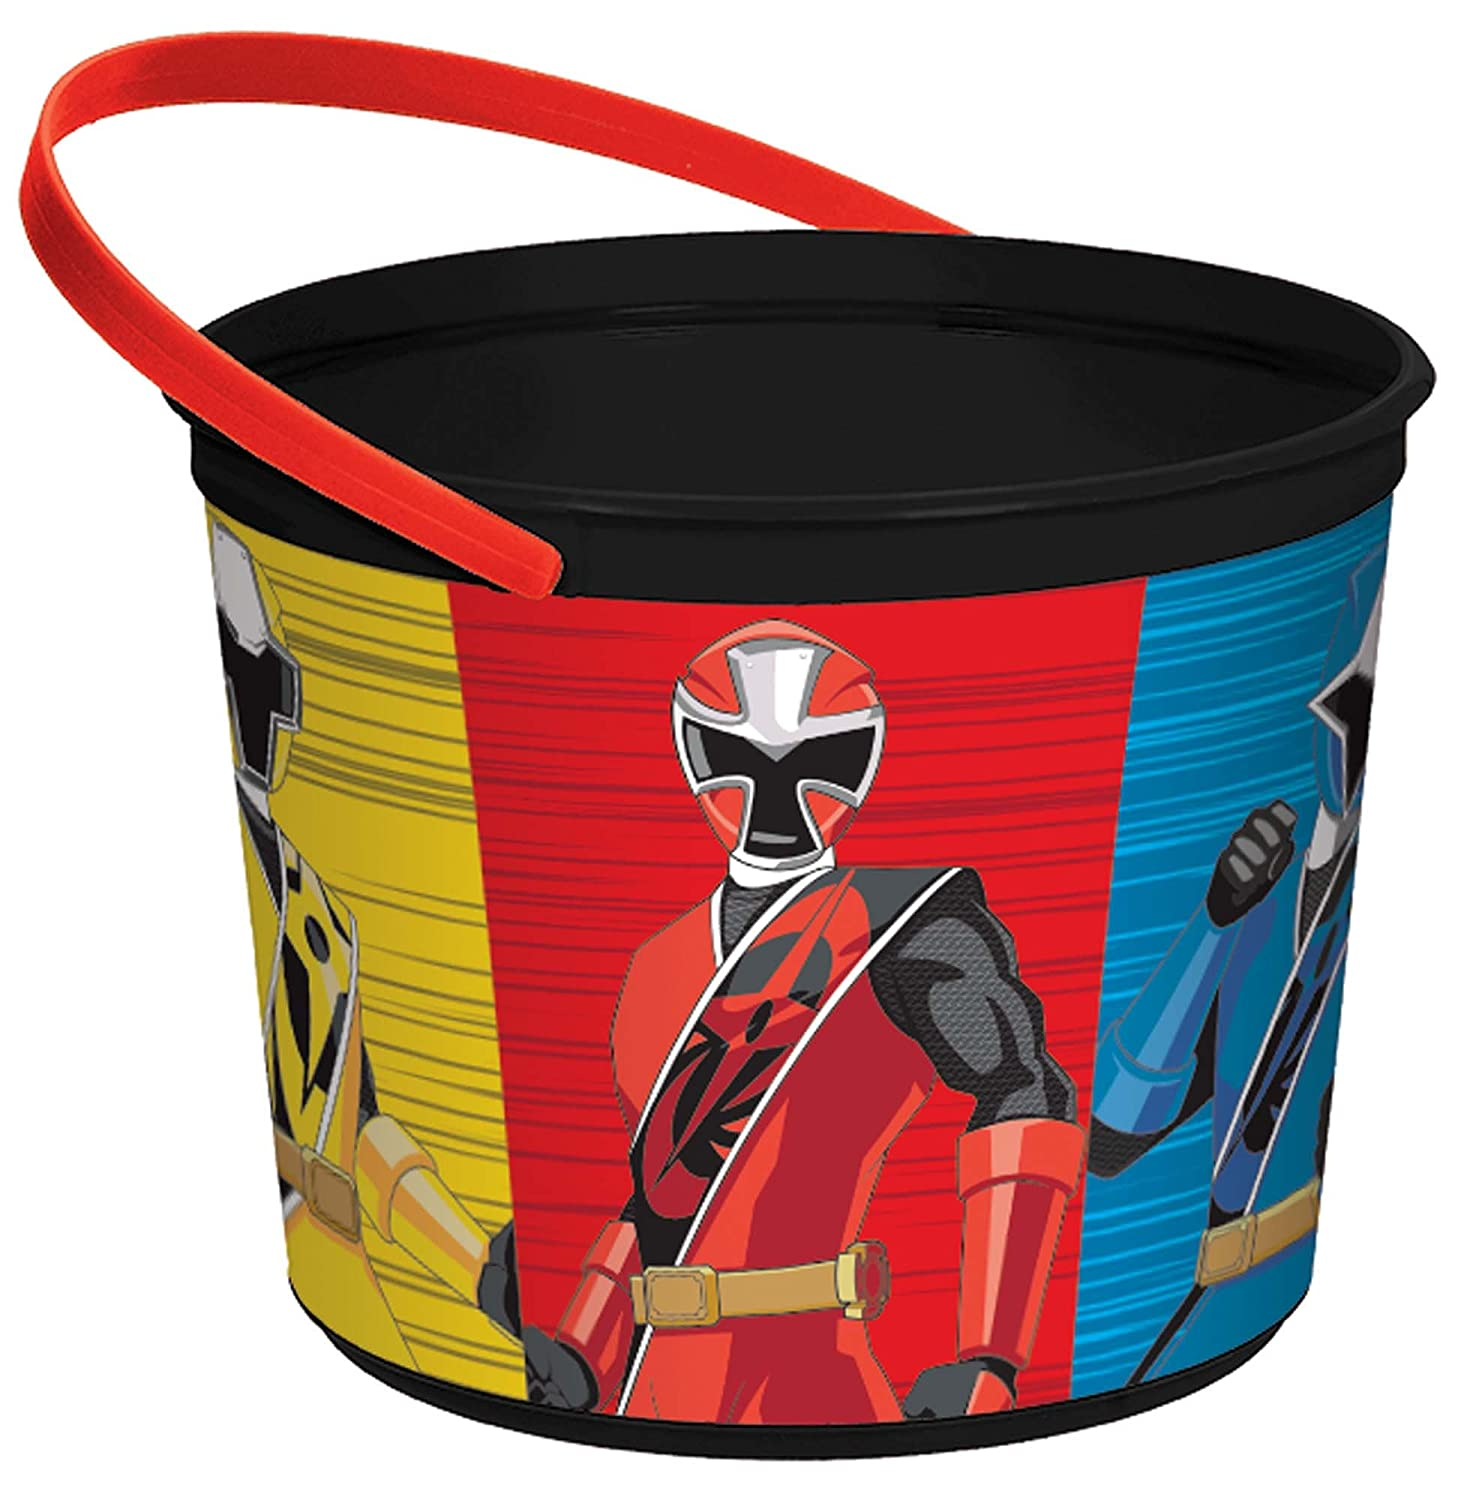 Power Rangers Ninja Steel Container, Party Favor